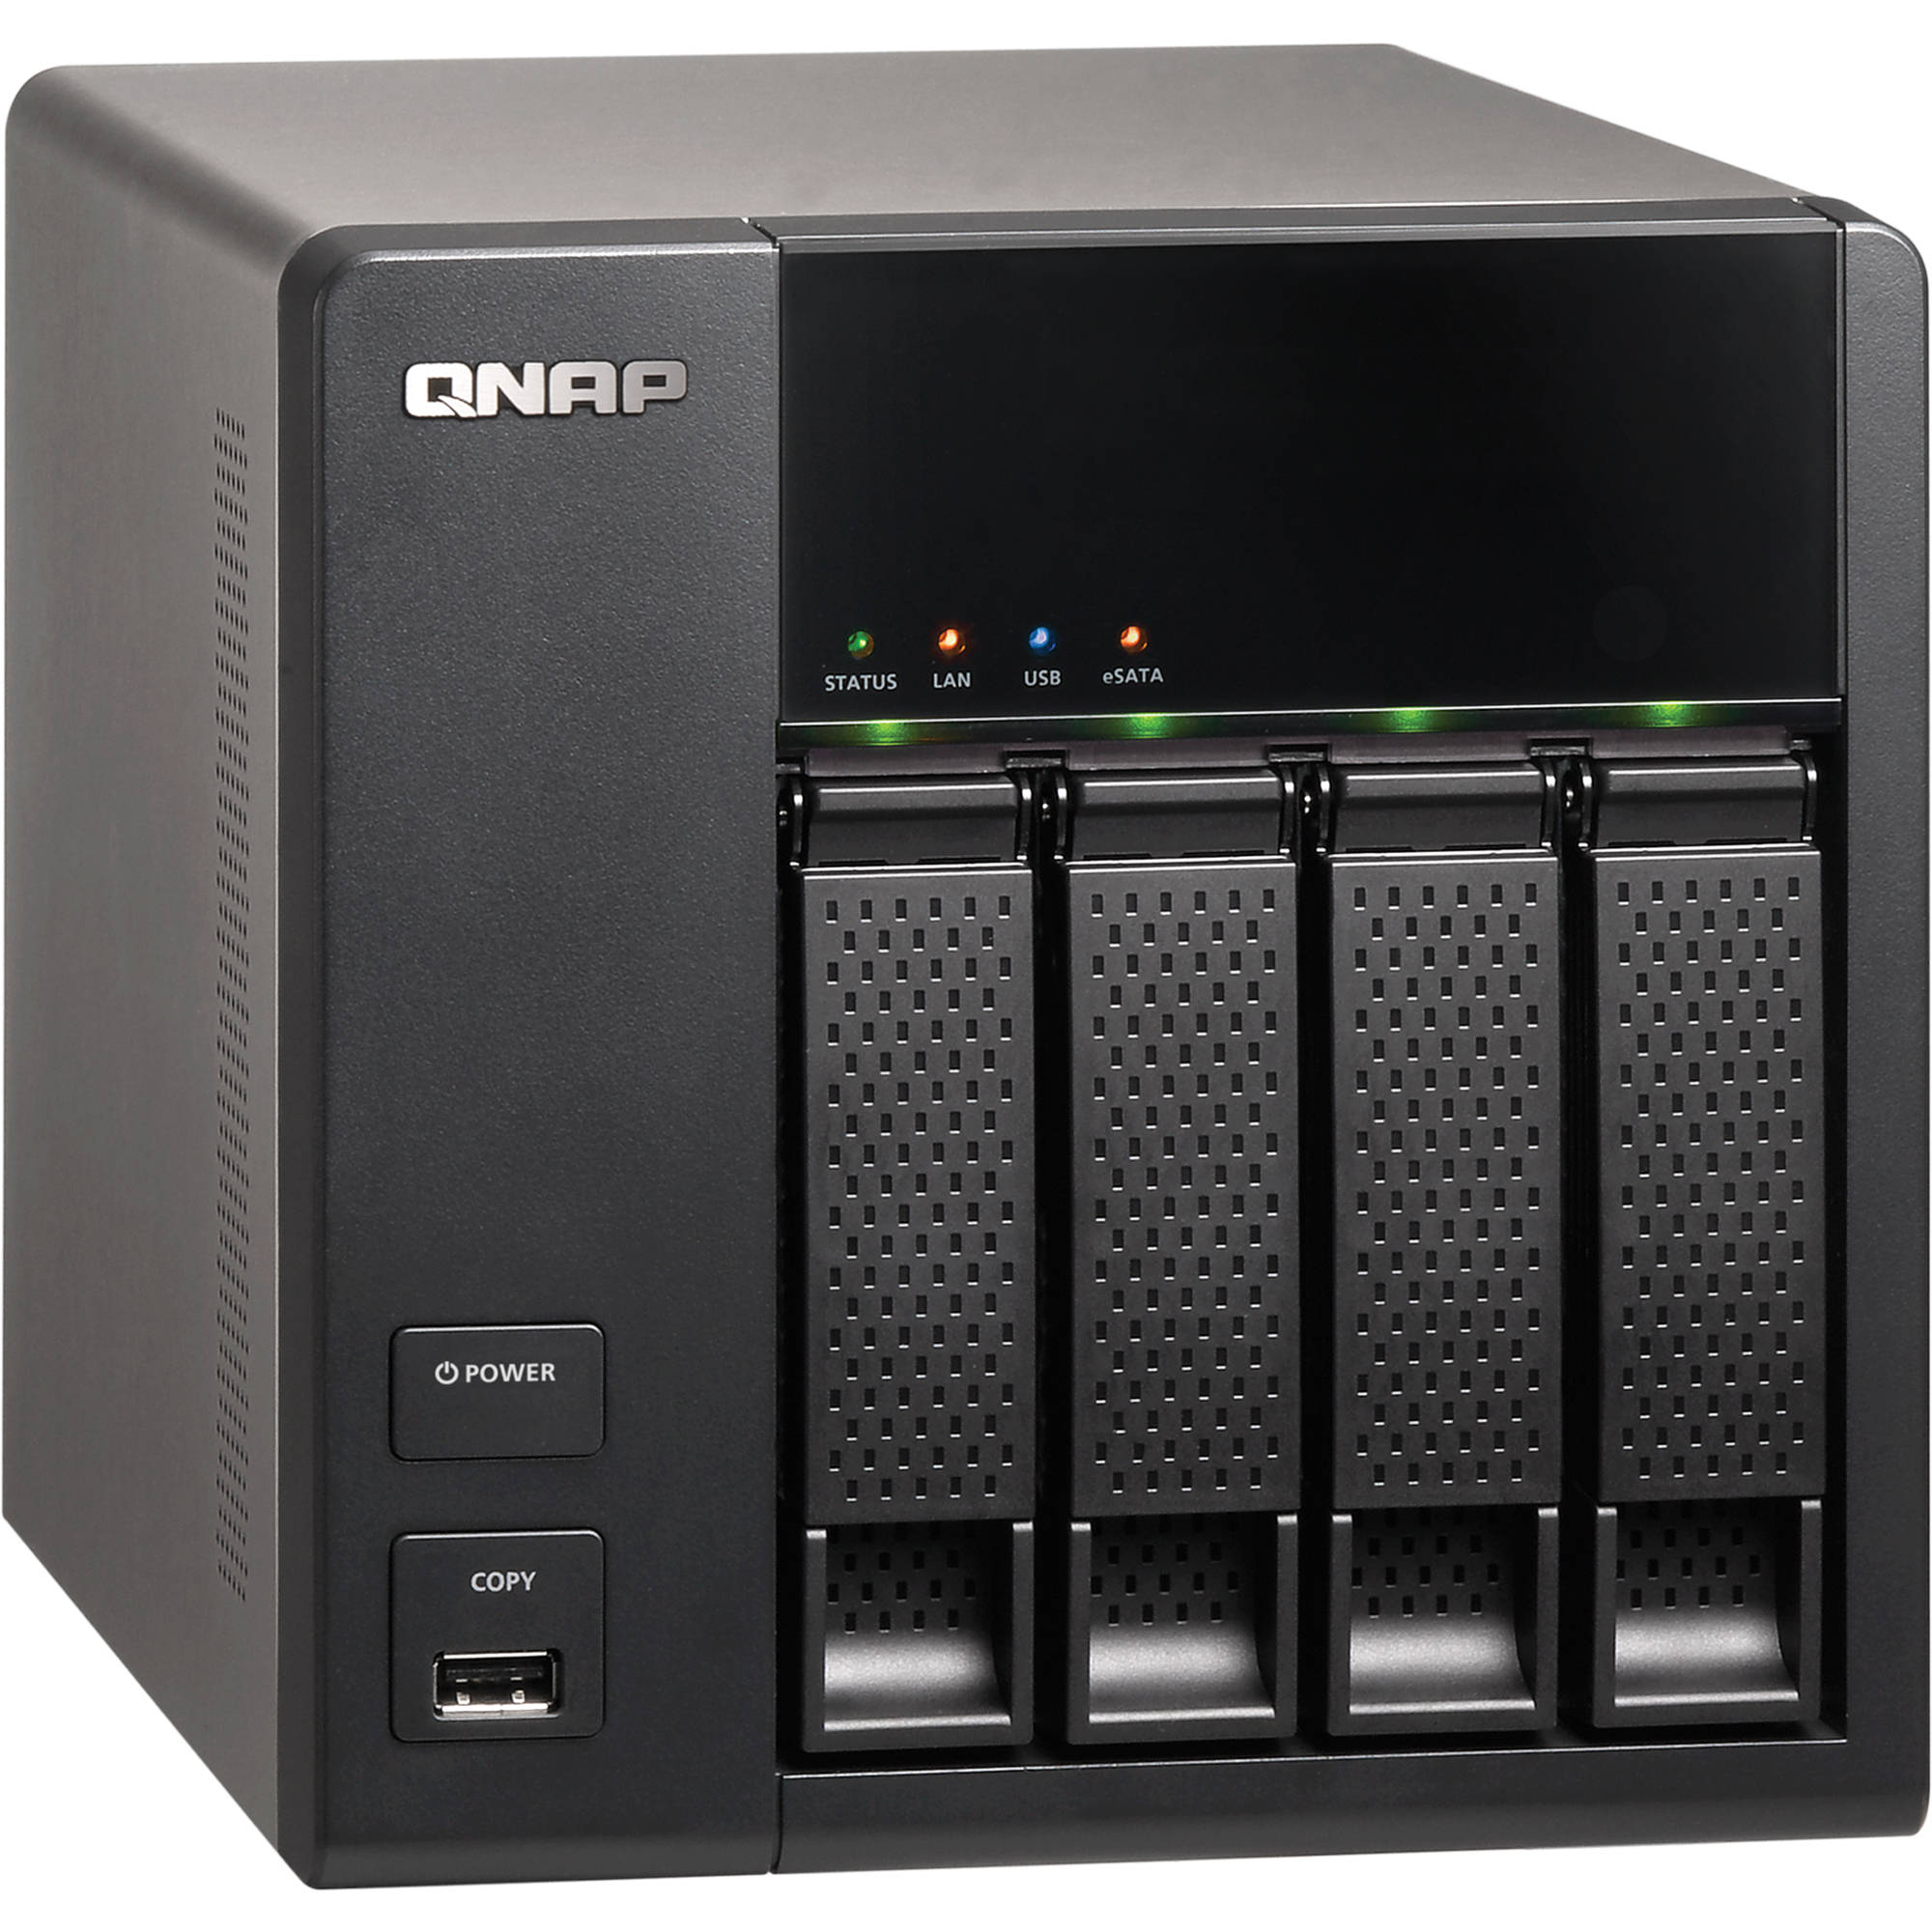 QNAP TS-420 4-Bay Home and SOHO NAS Server